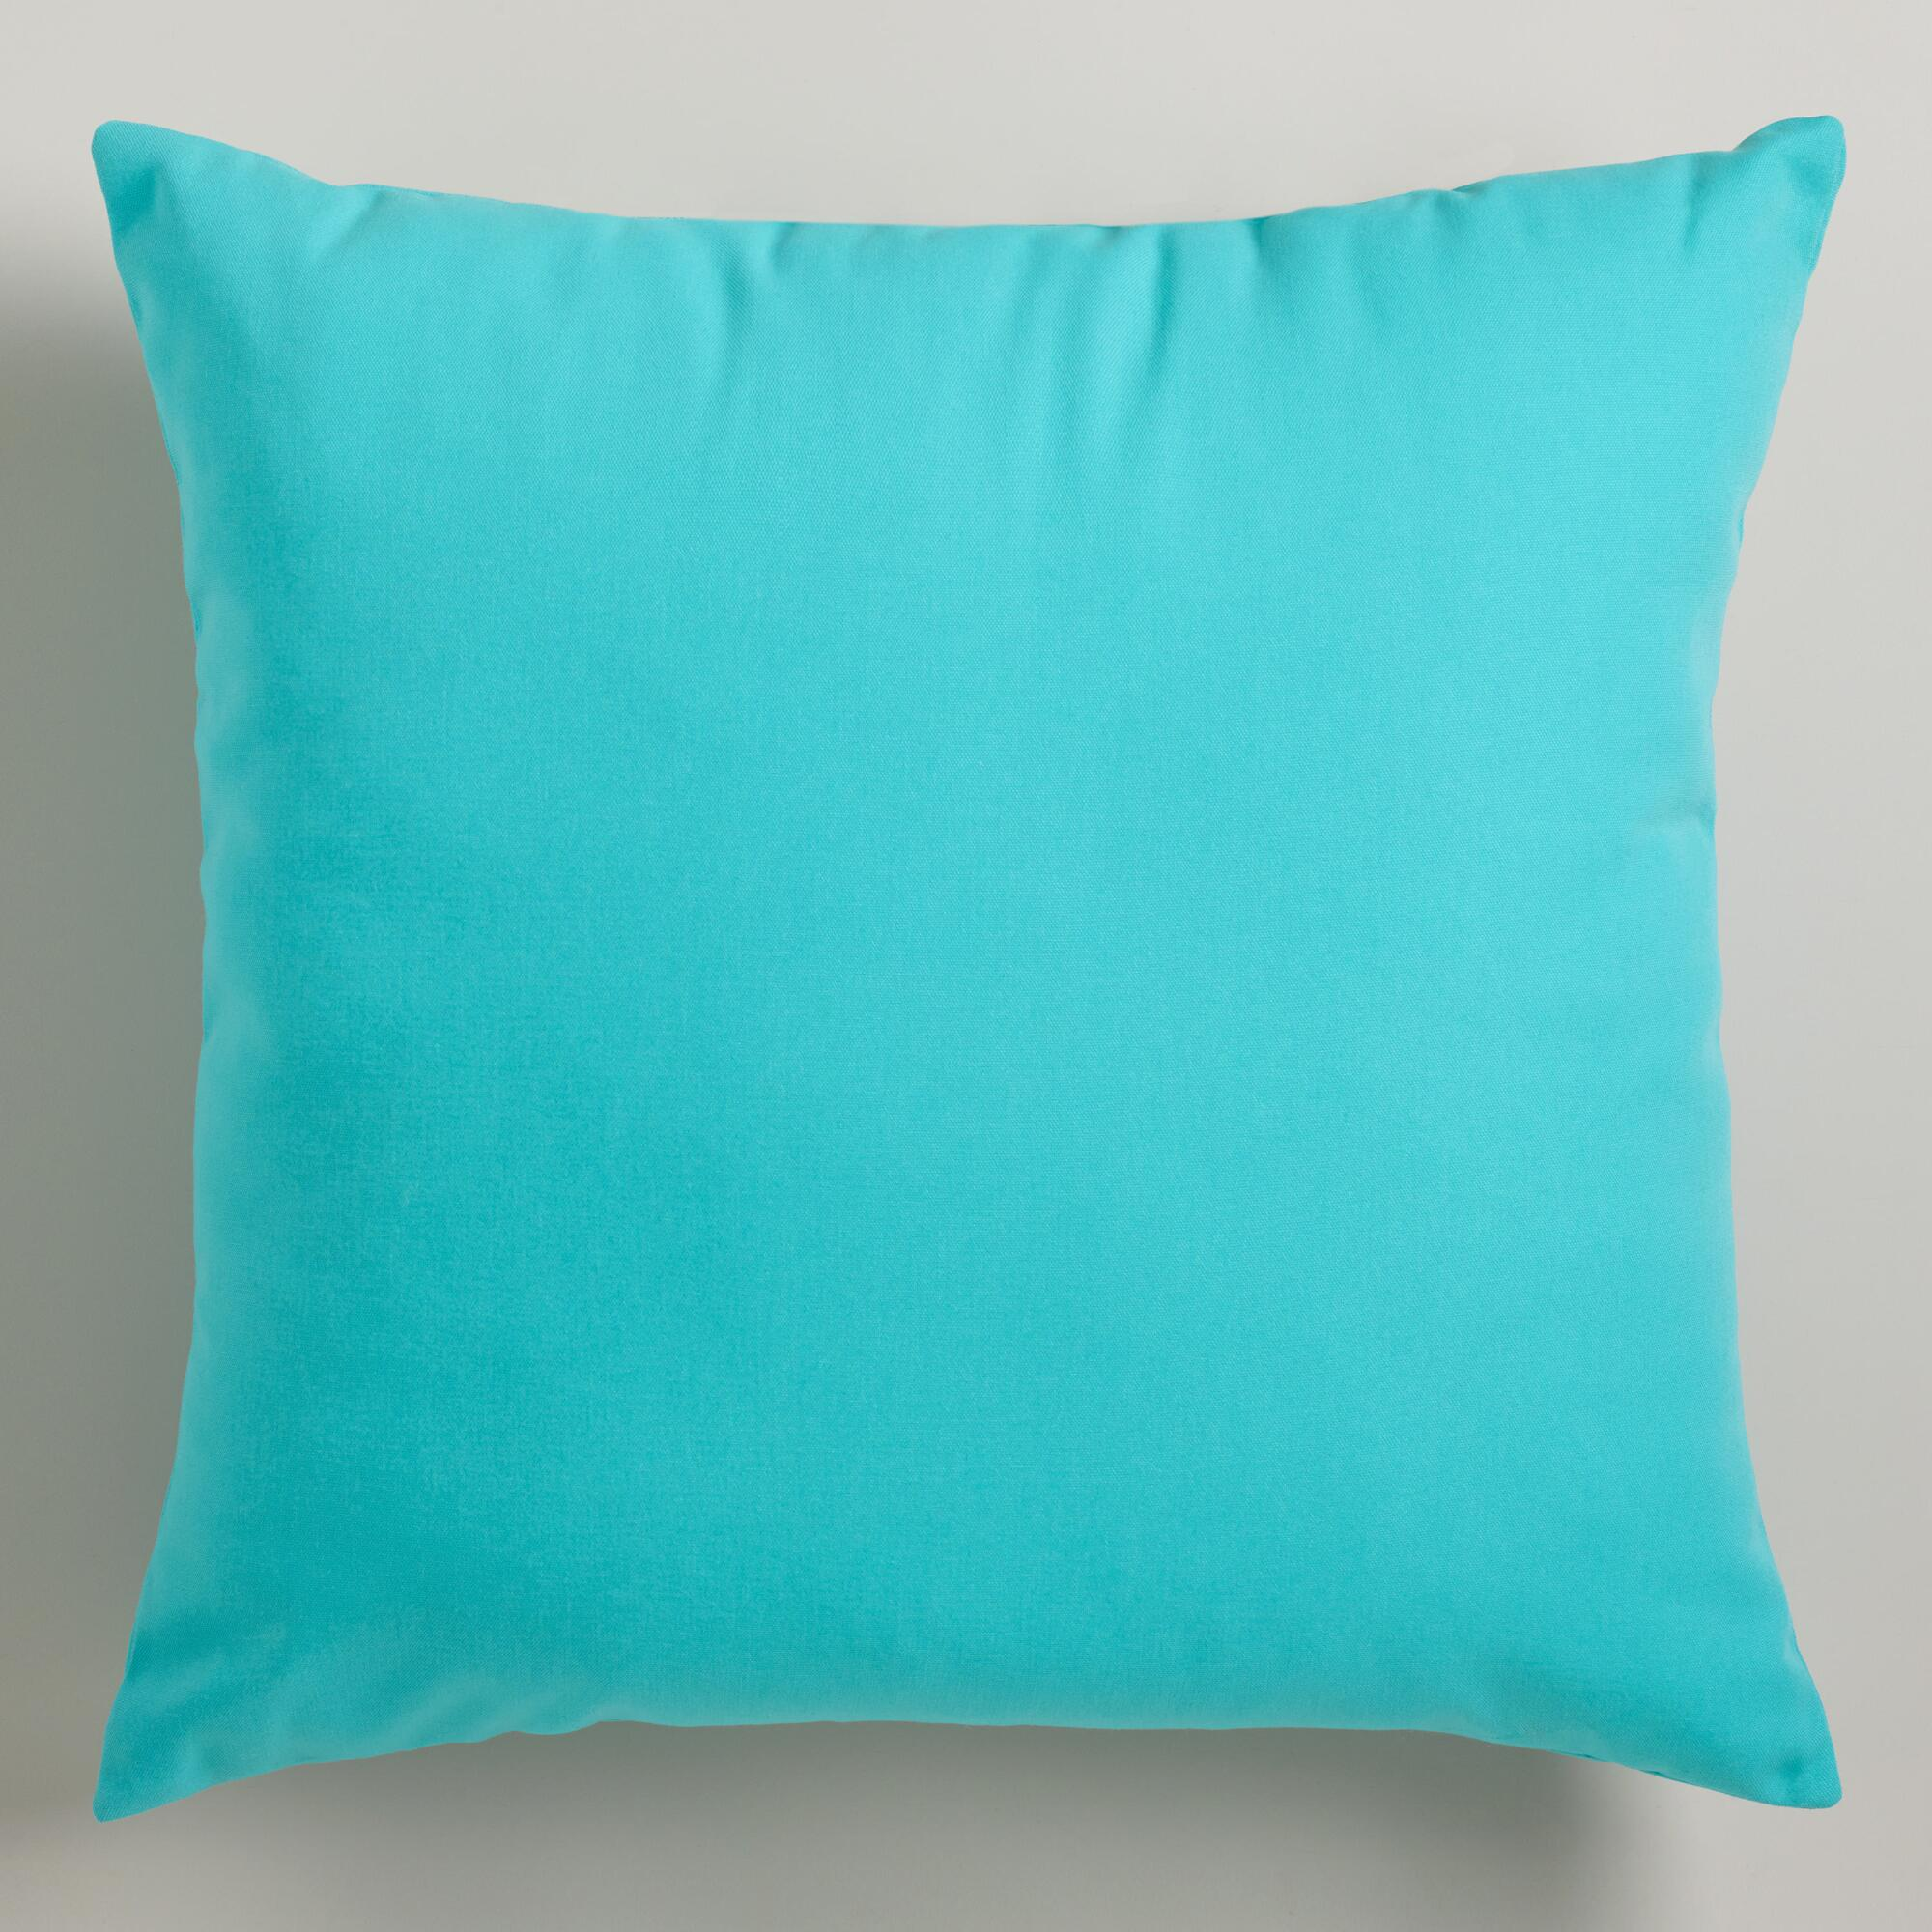 Throw Pillow Turquoise : 301 Moved Permanently